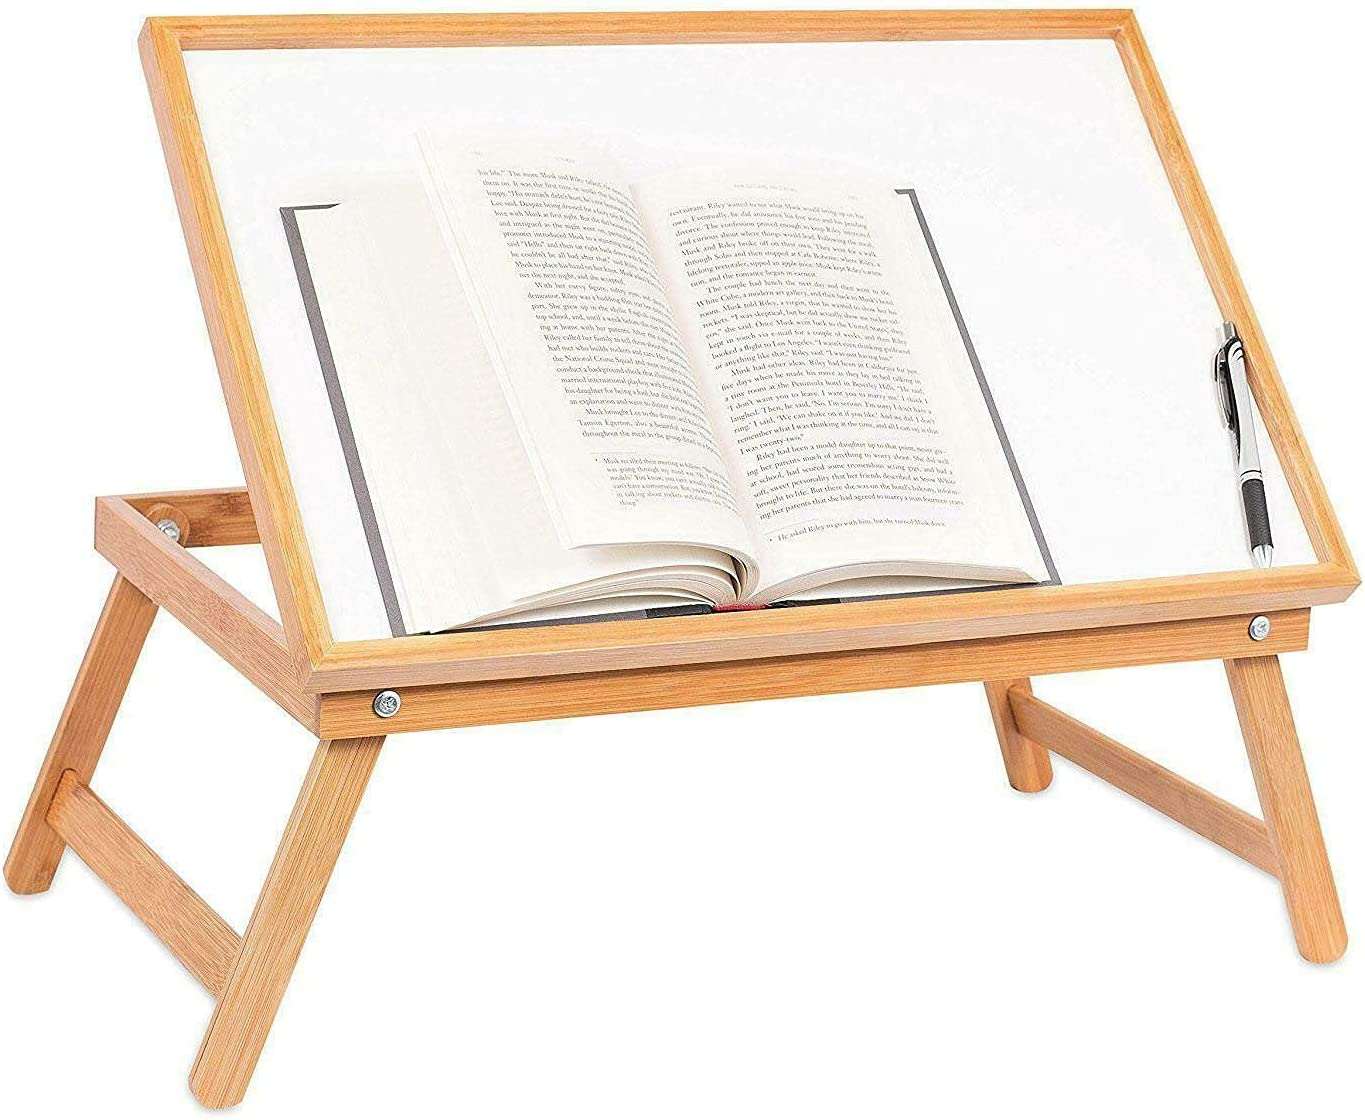 Adjustable Wood Los Angeles Mall Bed Tray Lap Desk Tv Sales for sale Folding Table Serving Legs